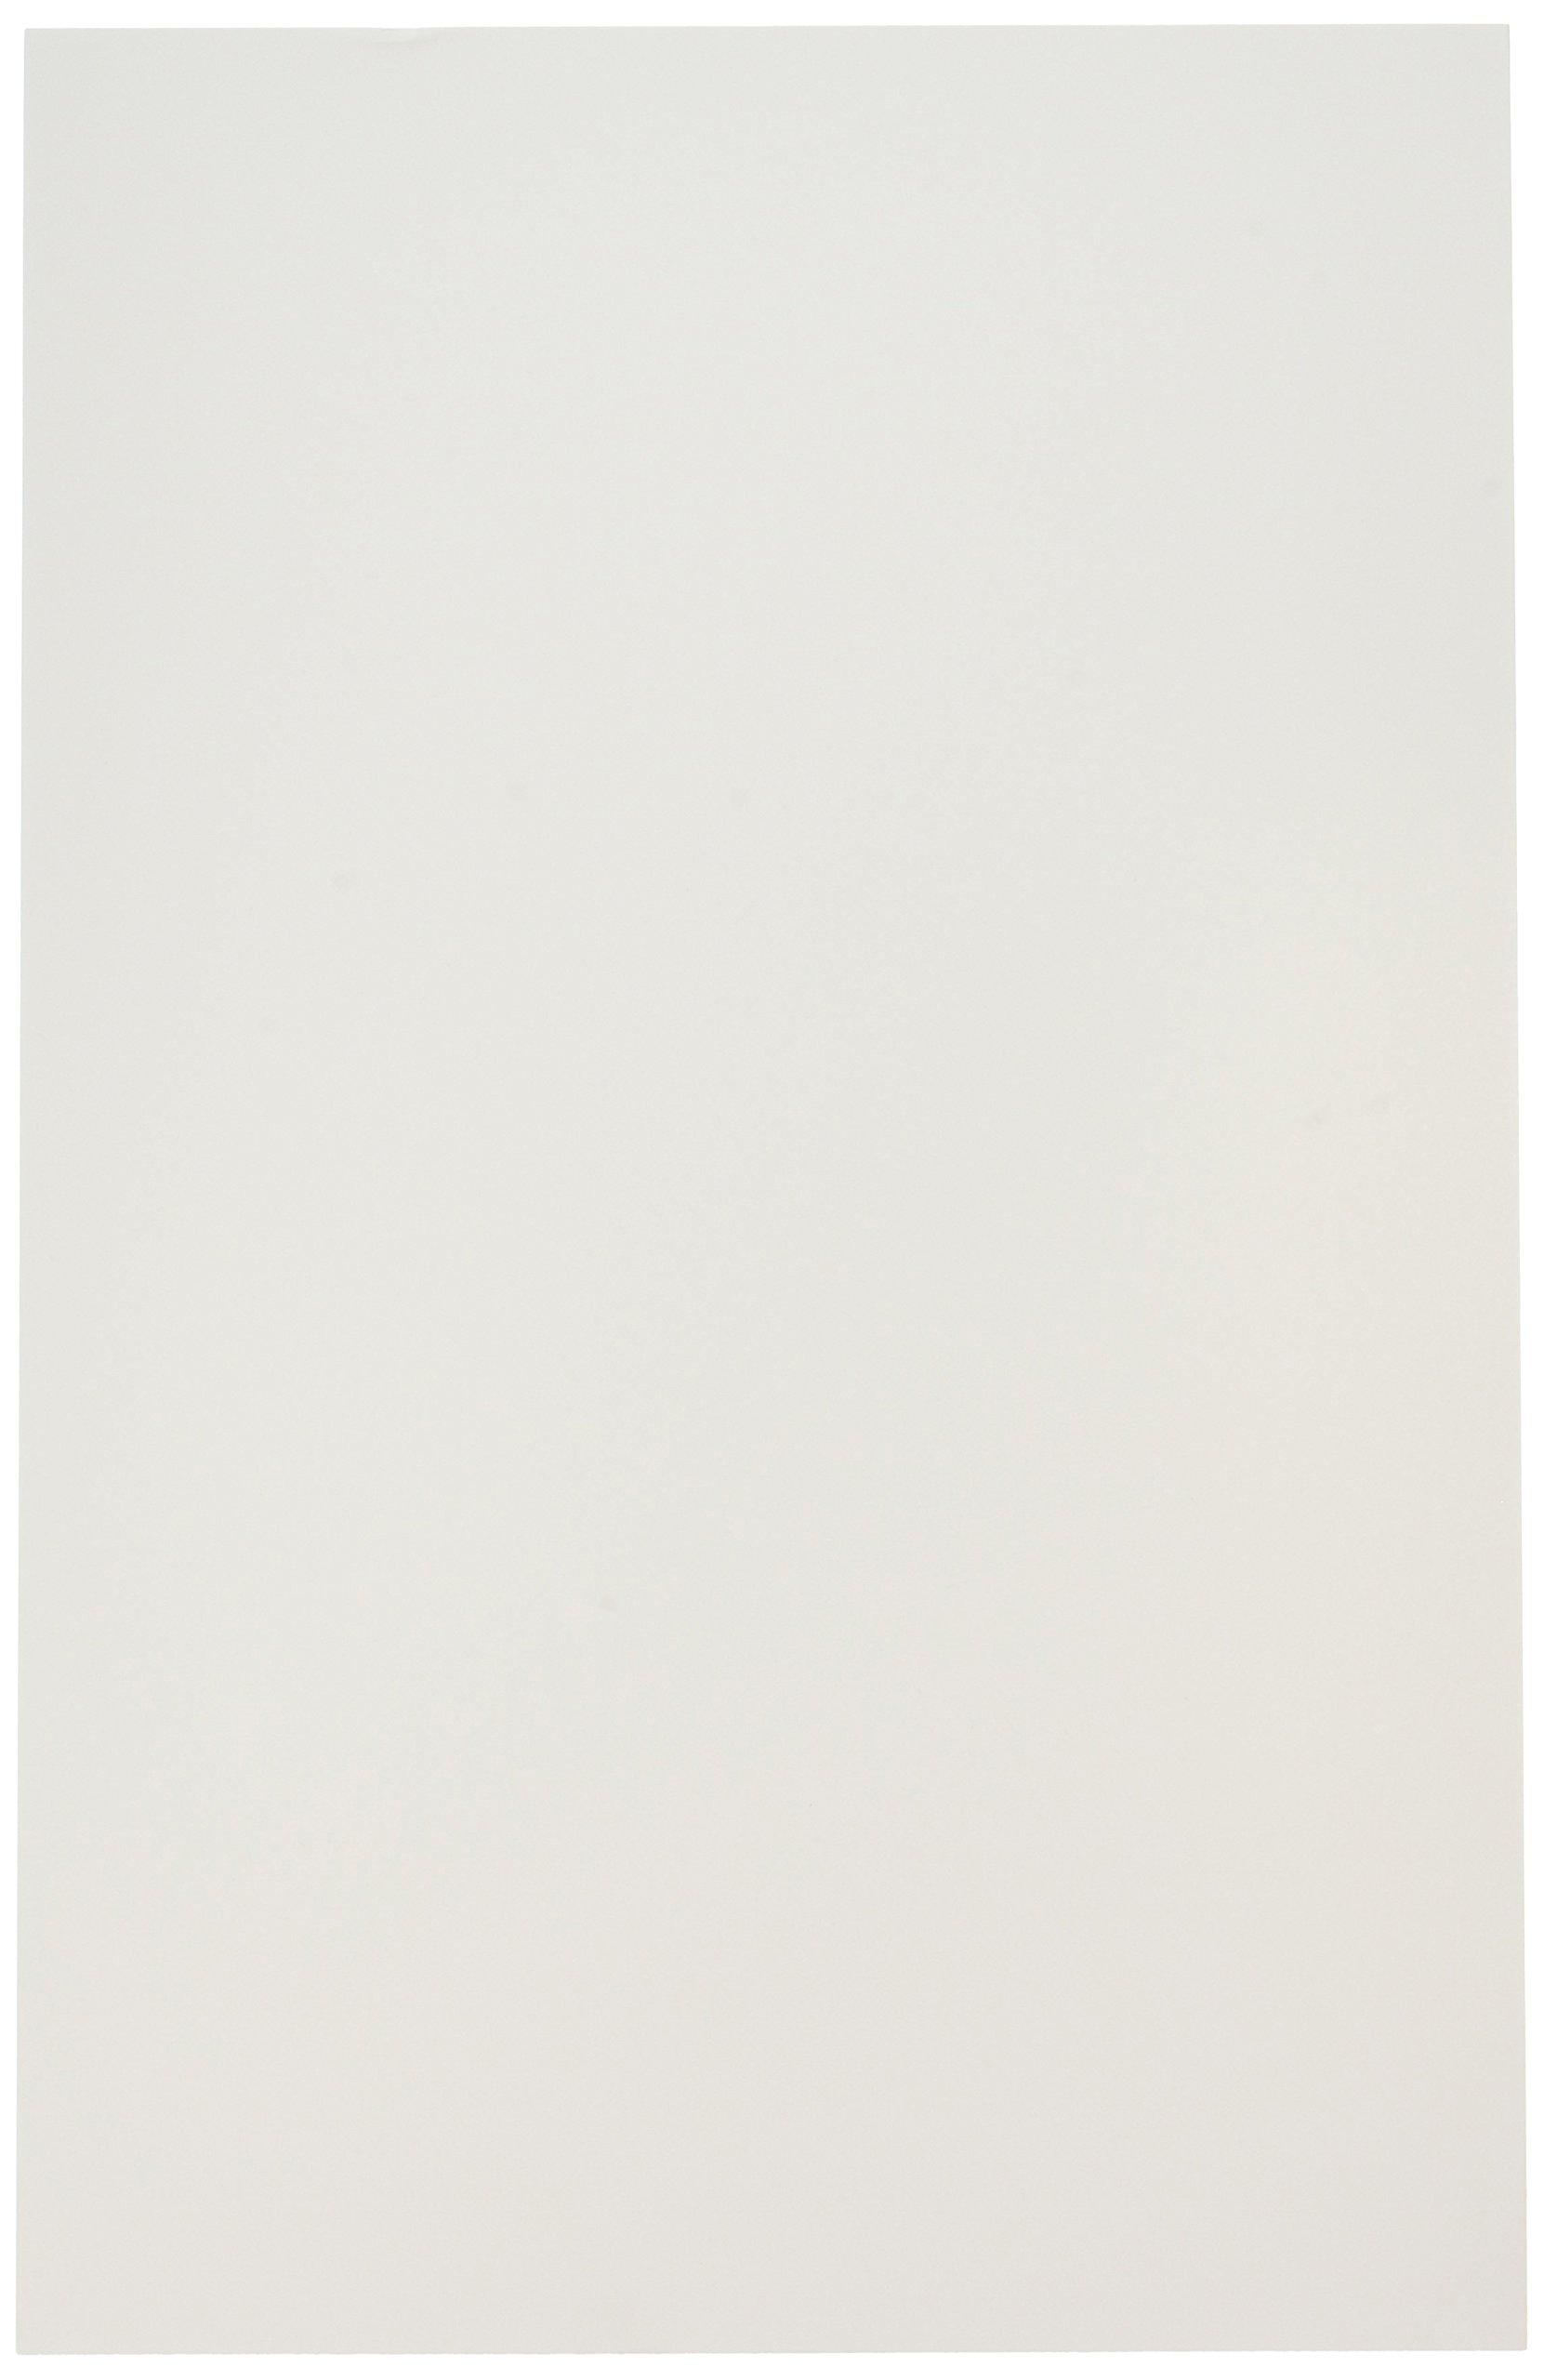 Xerox 3R11459 Graphic Xpressions Cover Stock, 250 Sheets by Xerox